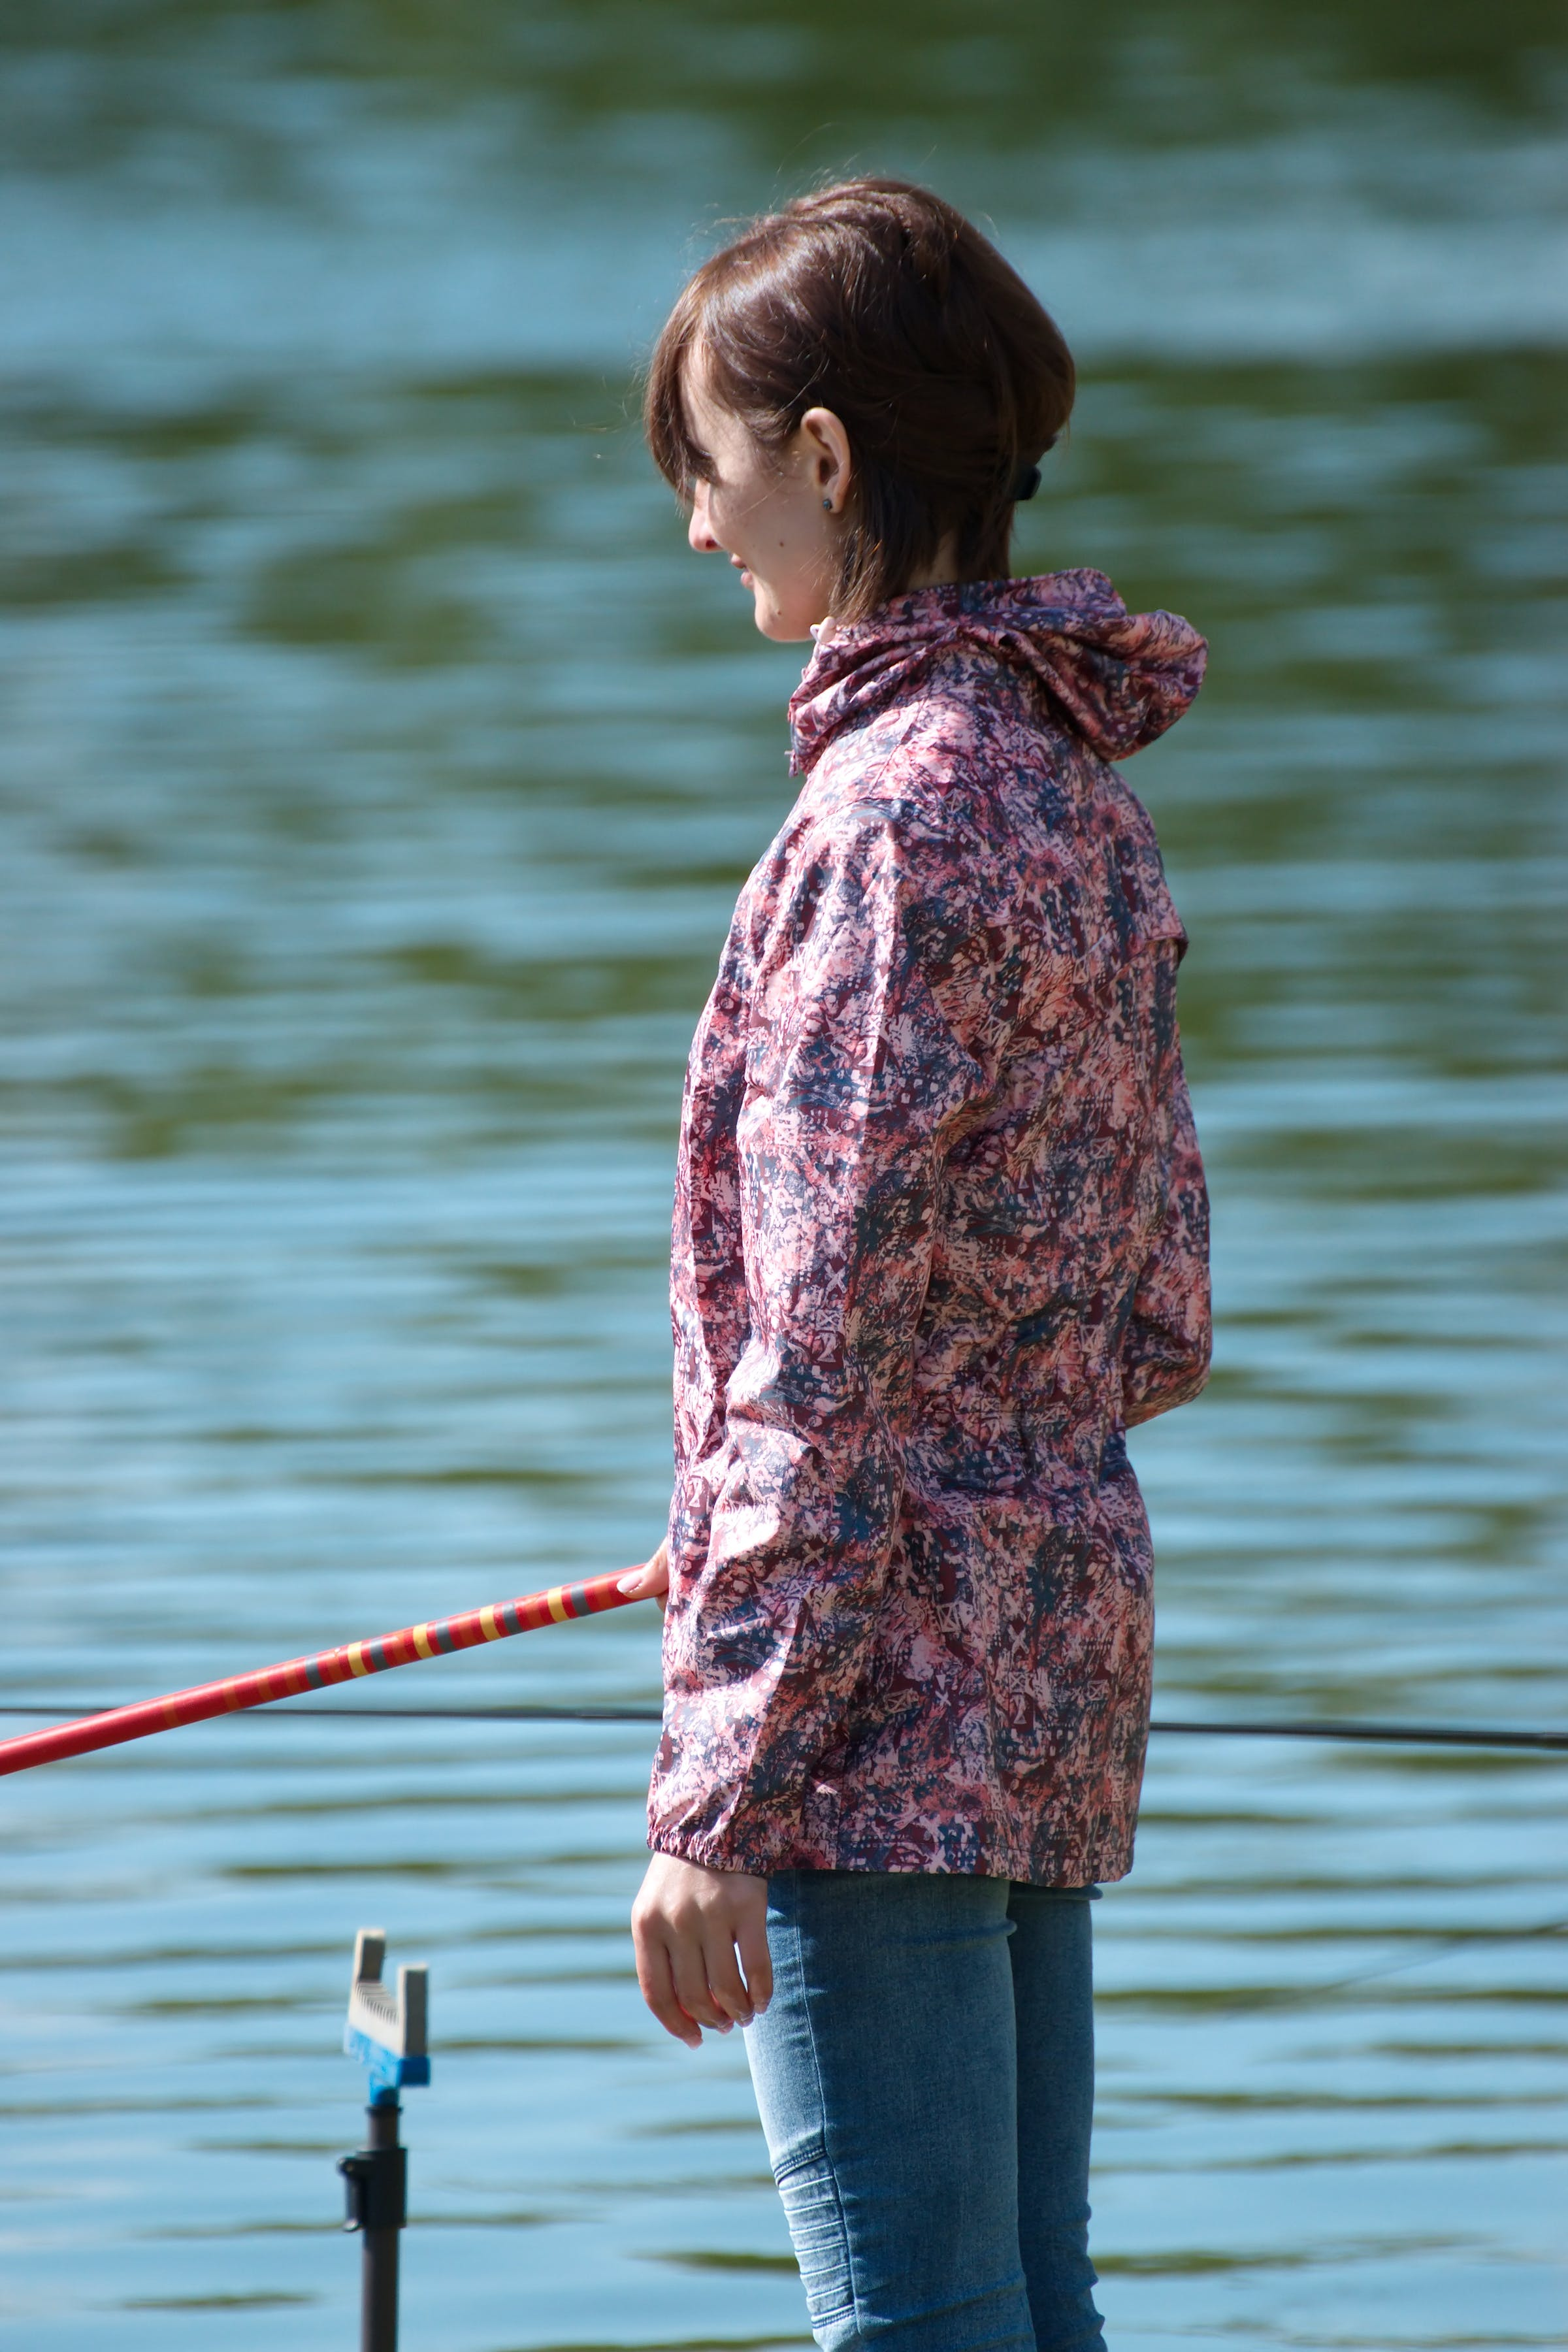 Selective Focus Photography of Woman Holding Red Fishing Rod Standing Beside Calm Body of Water